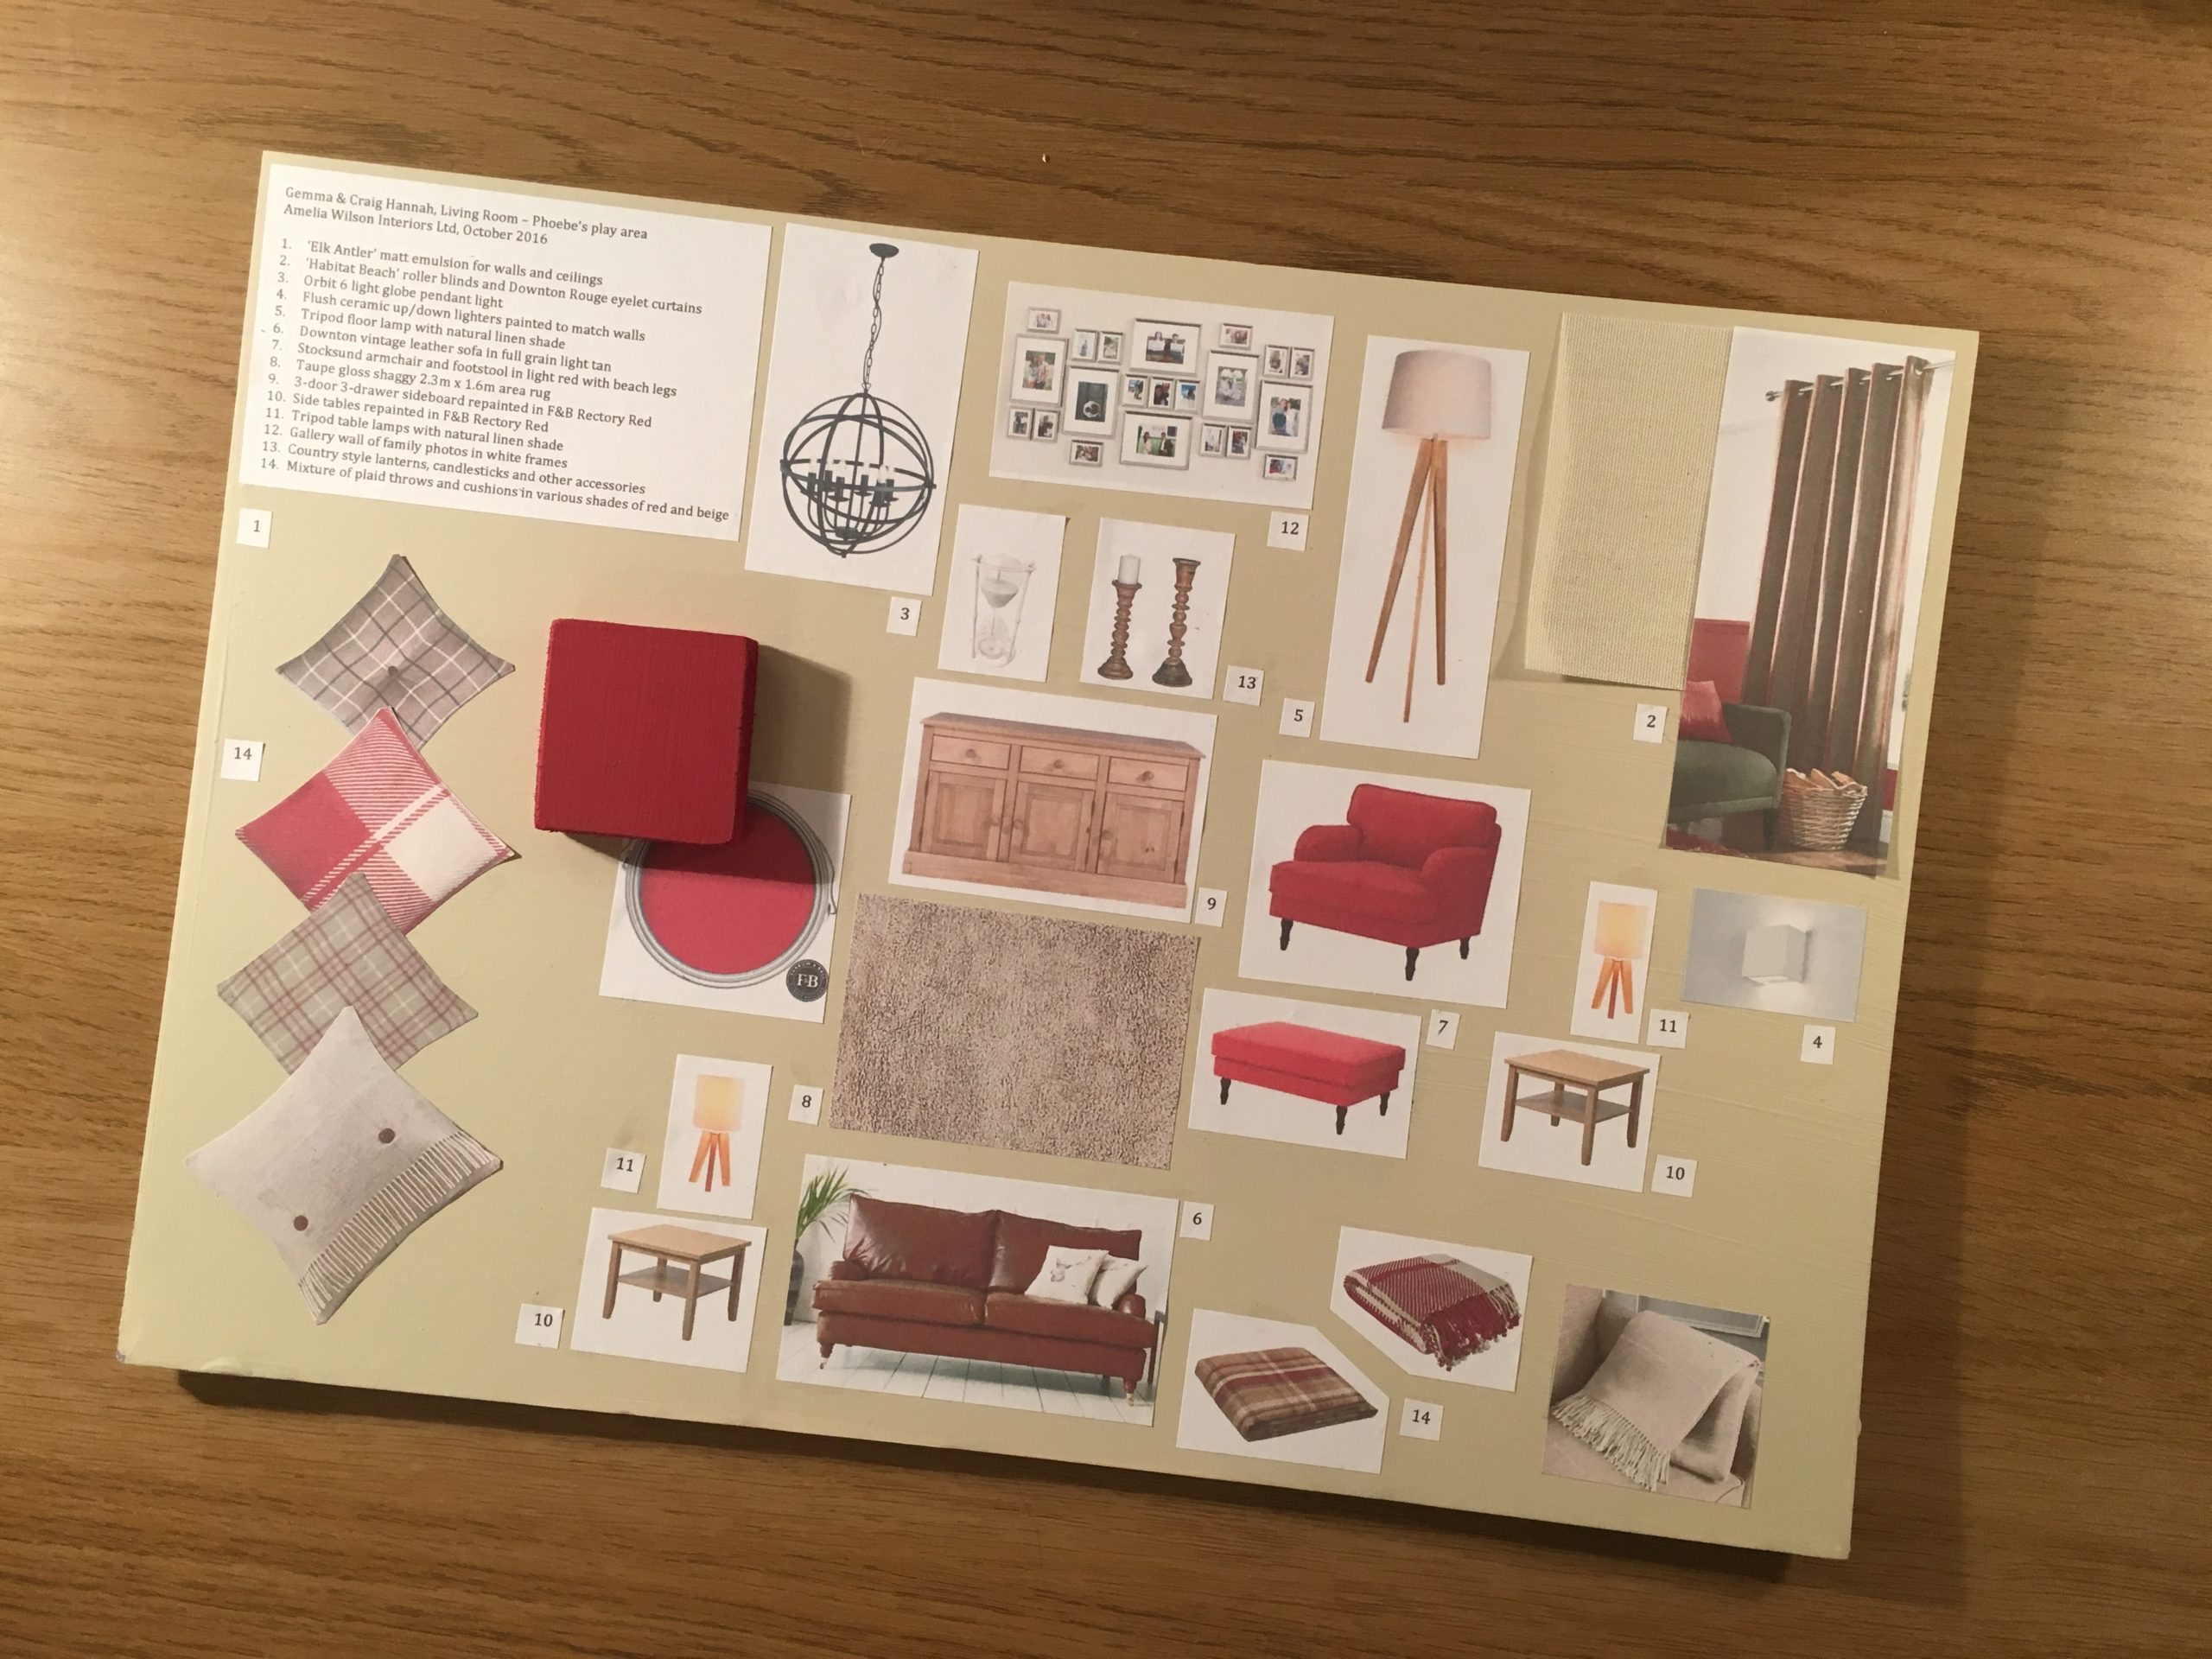 Moodboard for living room project created by Amelia Wilson Interiors Ltd